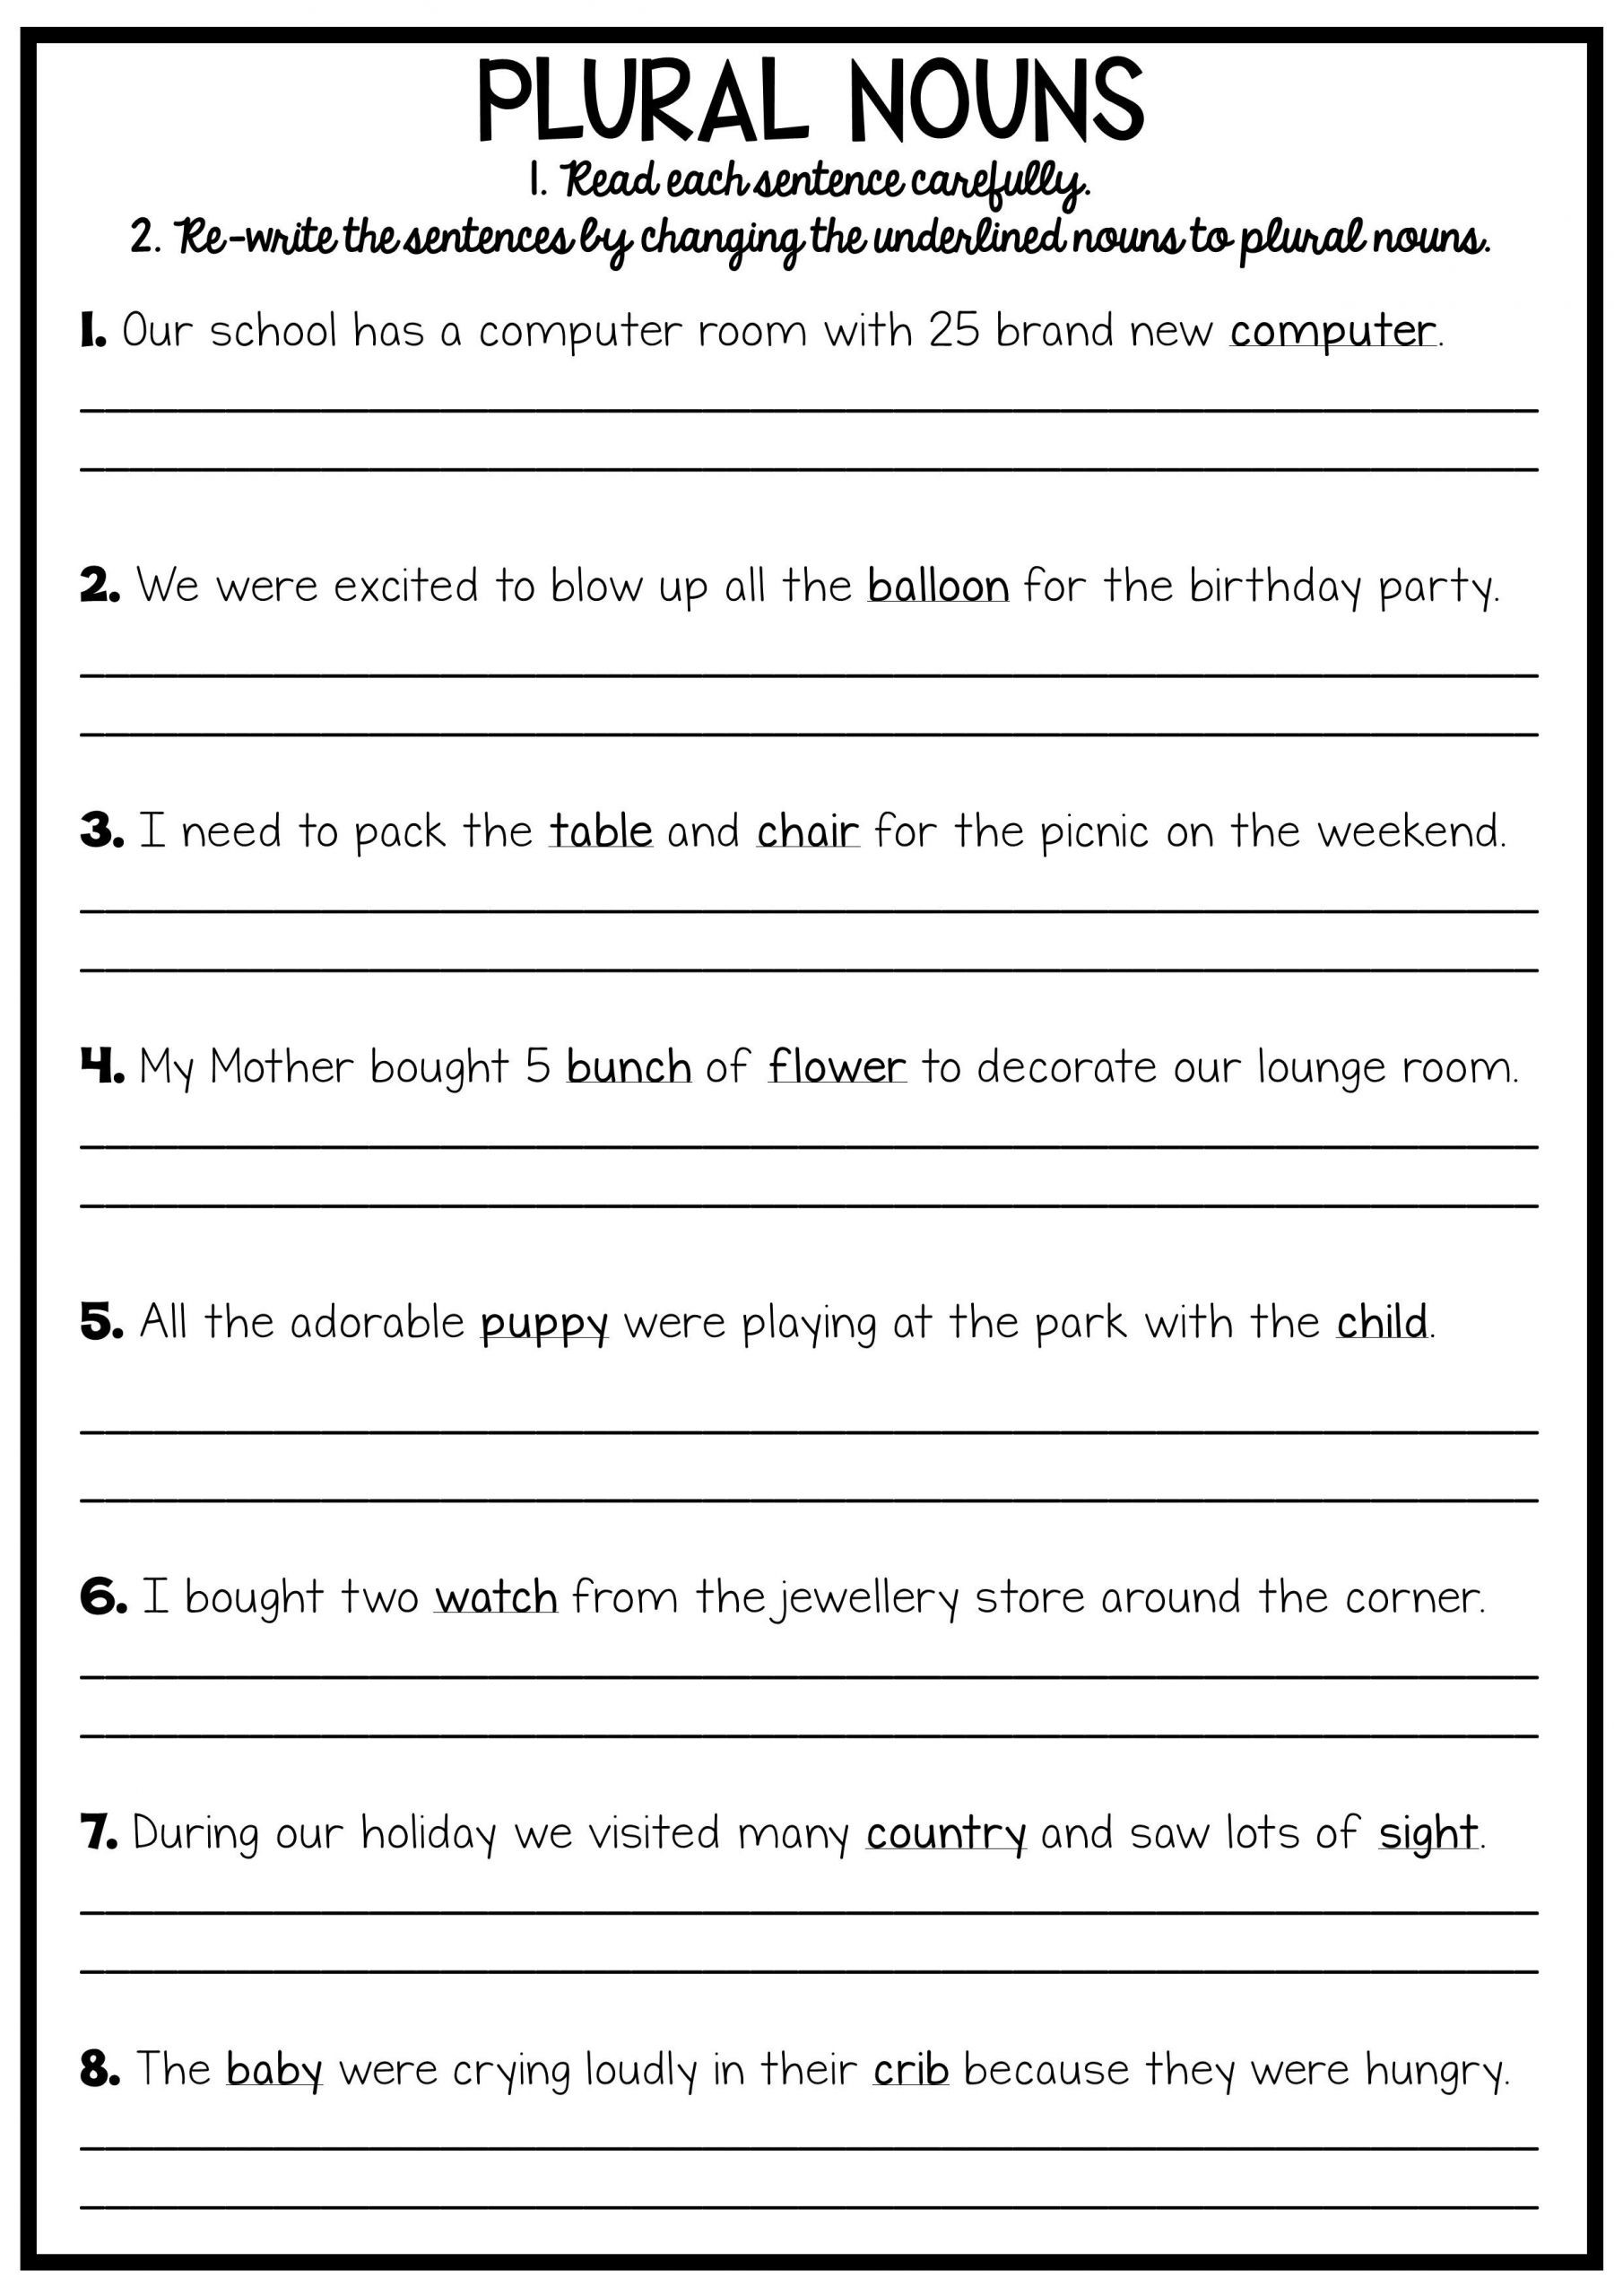 7th Grade Grammar Worksheets Pdf Bible Math Worksheets Pronoun Worksheets for Grade 2 8th